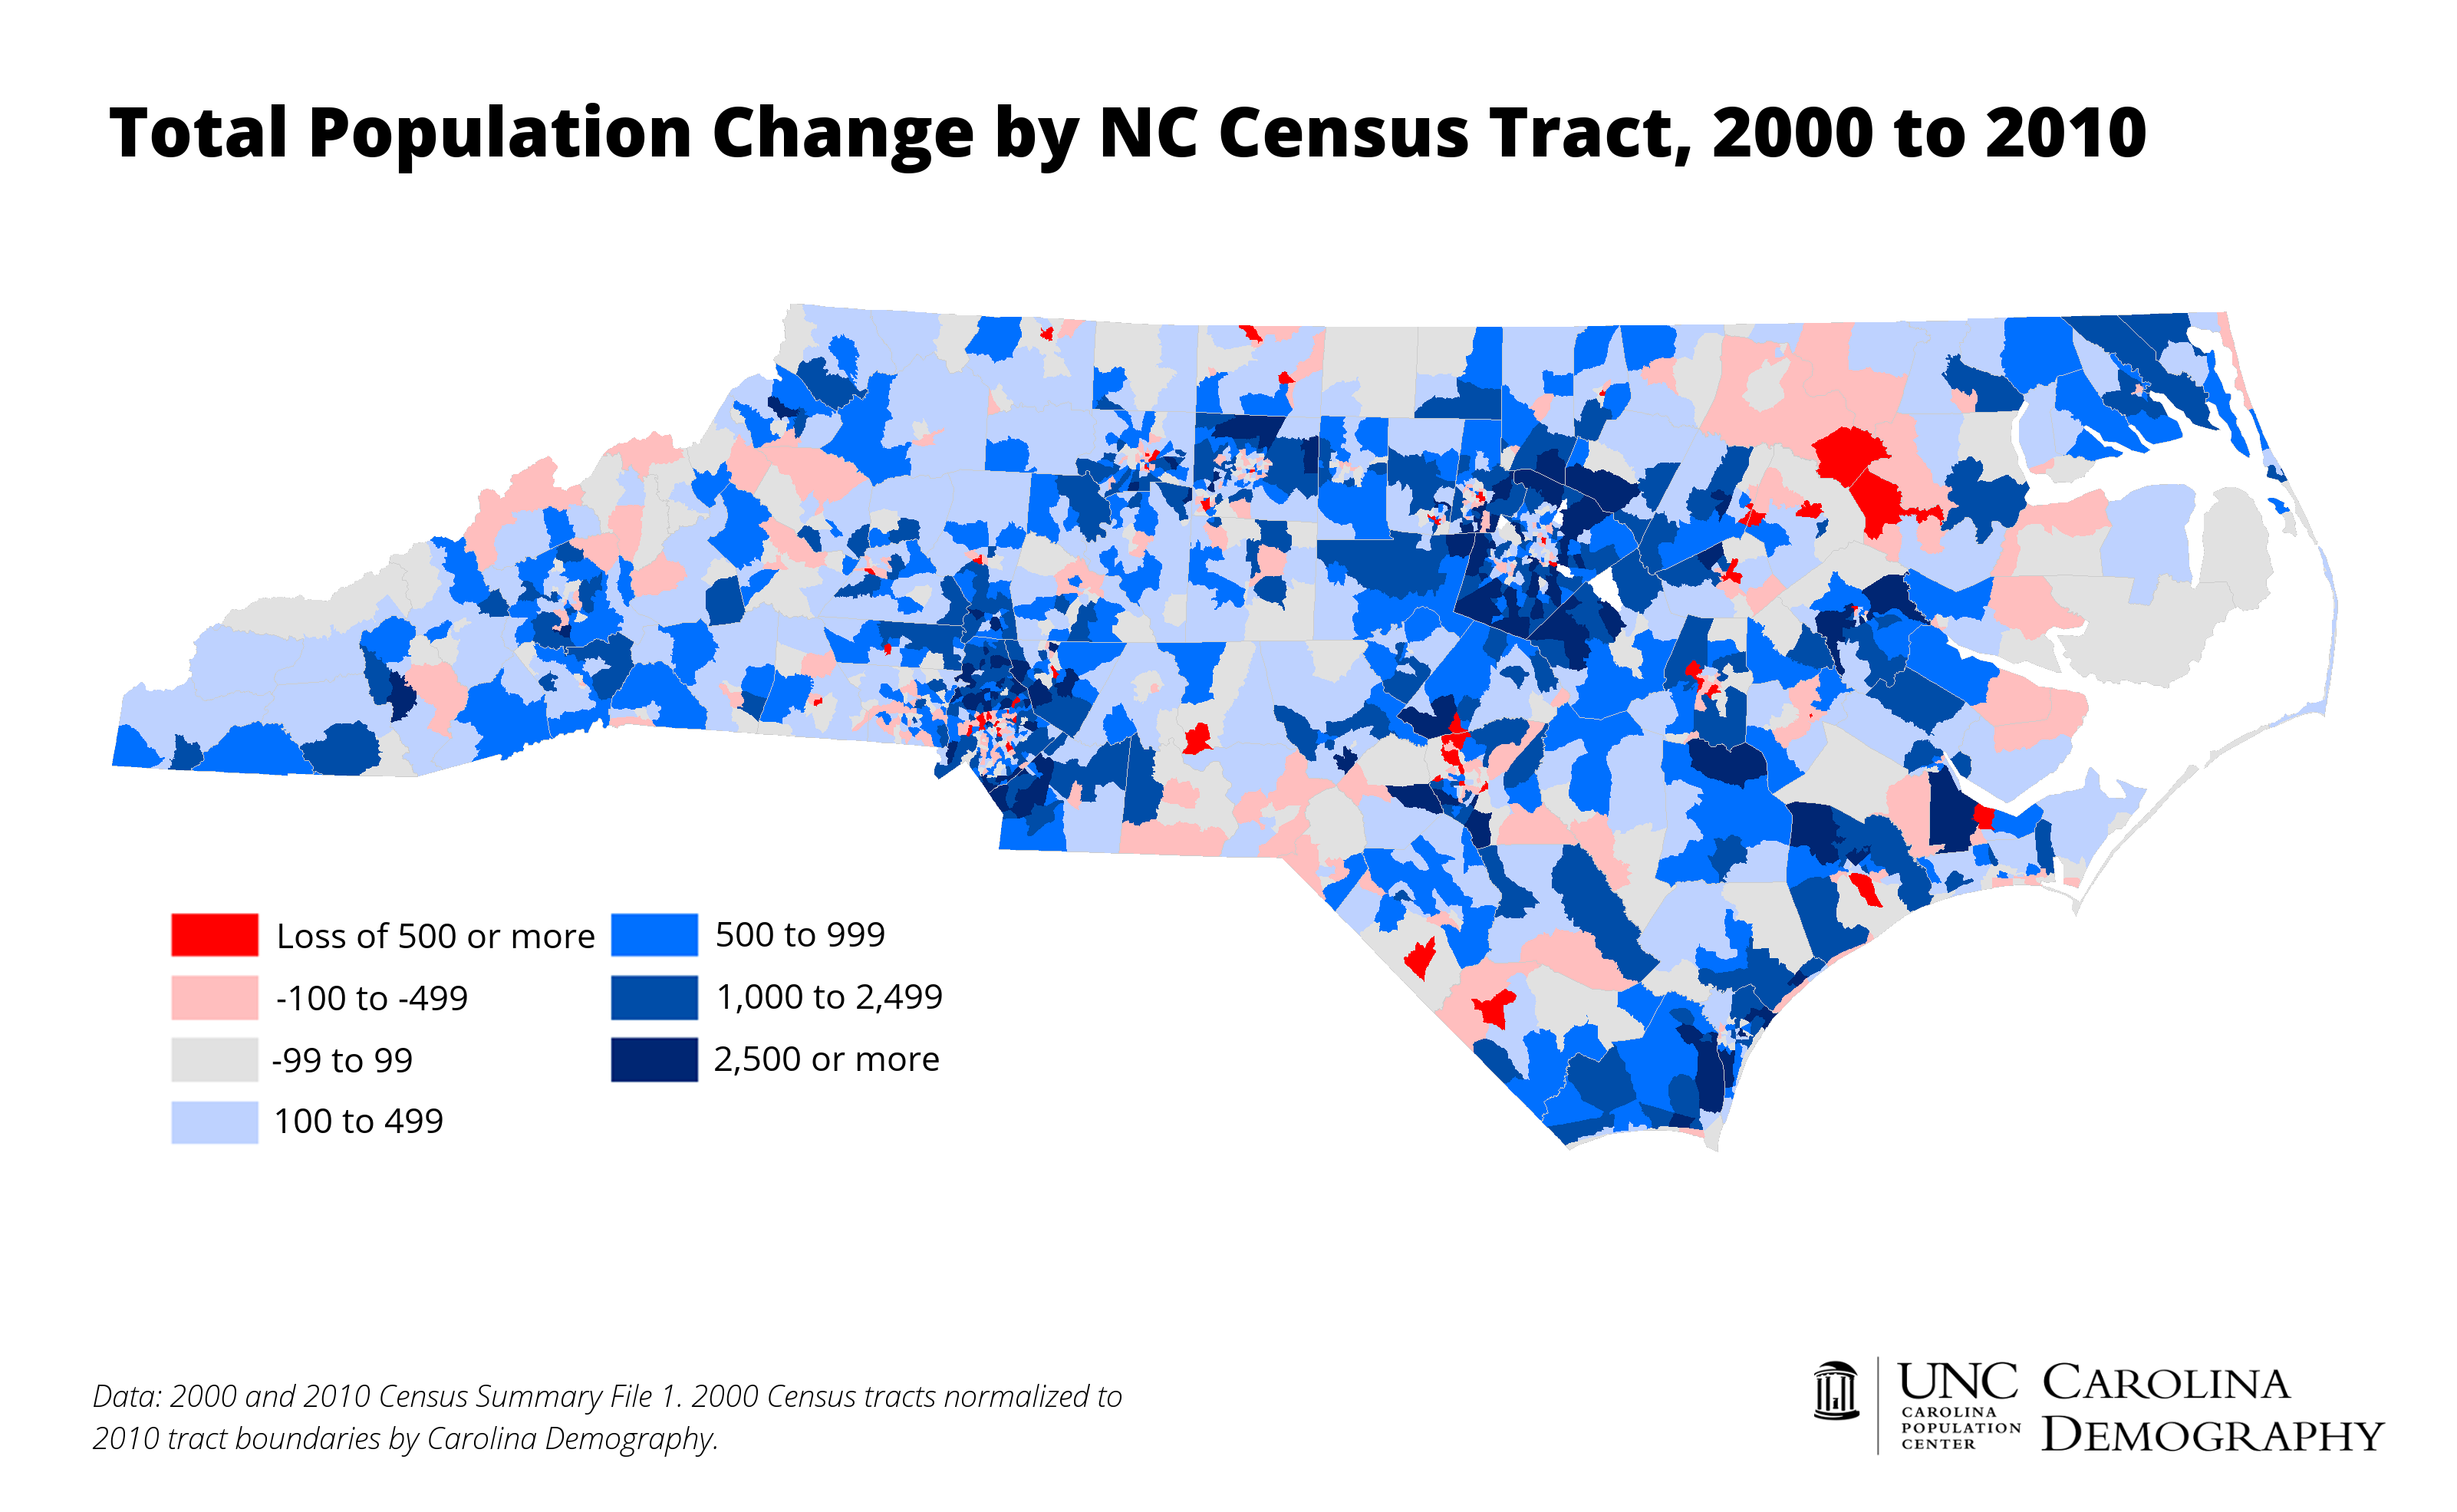 http://demography.cpc.unc.edu/wp-content/uploads/2014/03/Total-Pop-Change_NC_Tract_CD.png